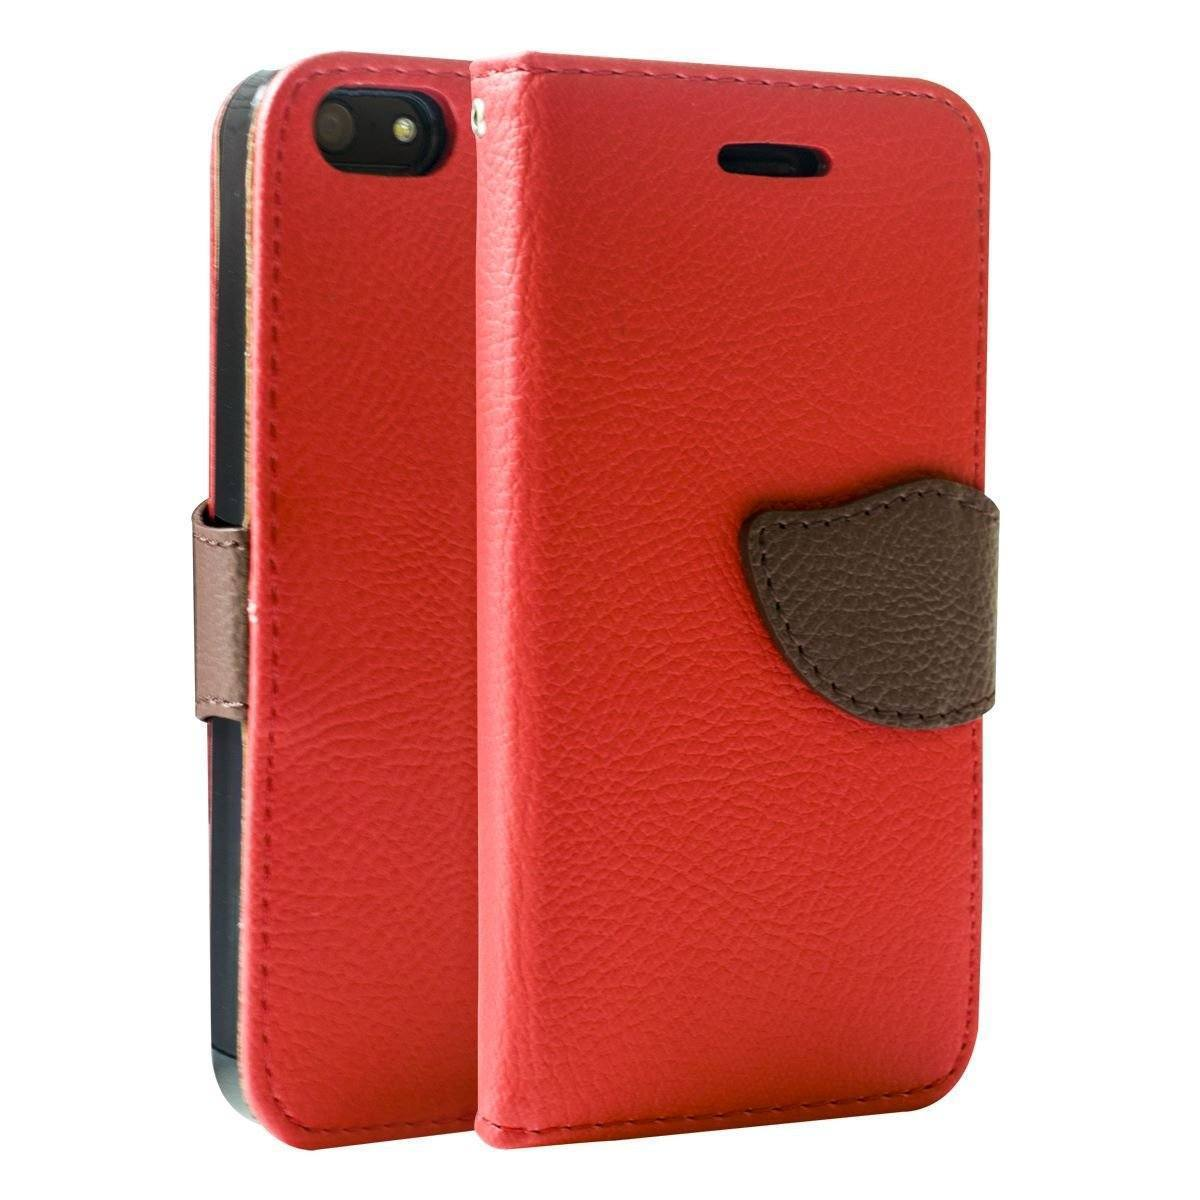 Wing Wallet Case for iPhone 5 - Red